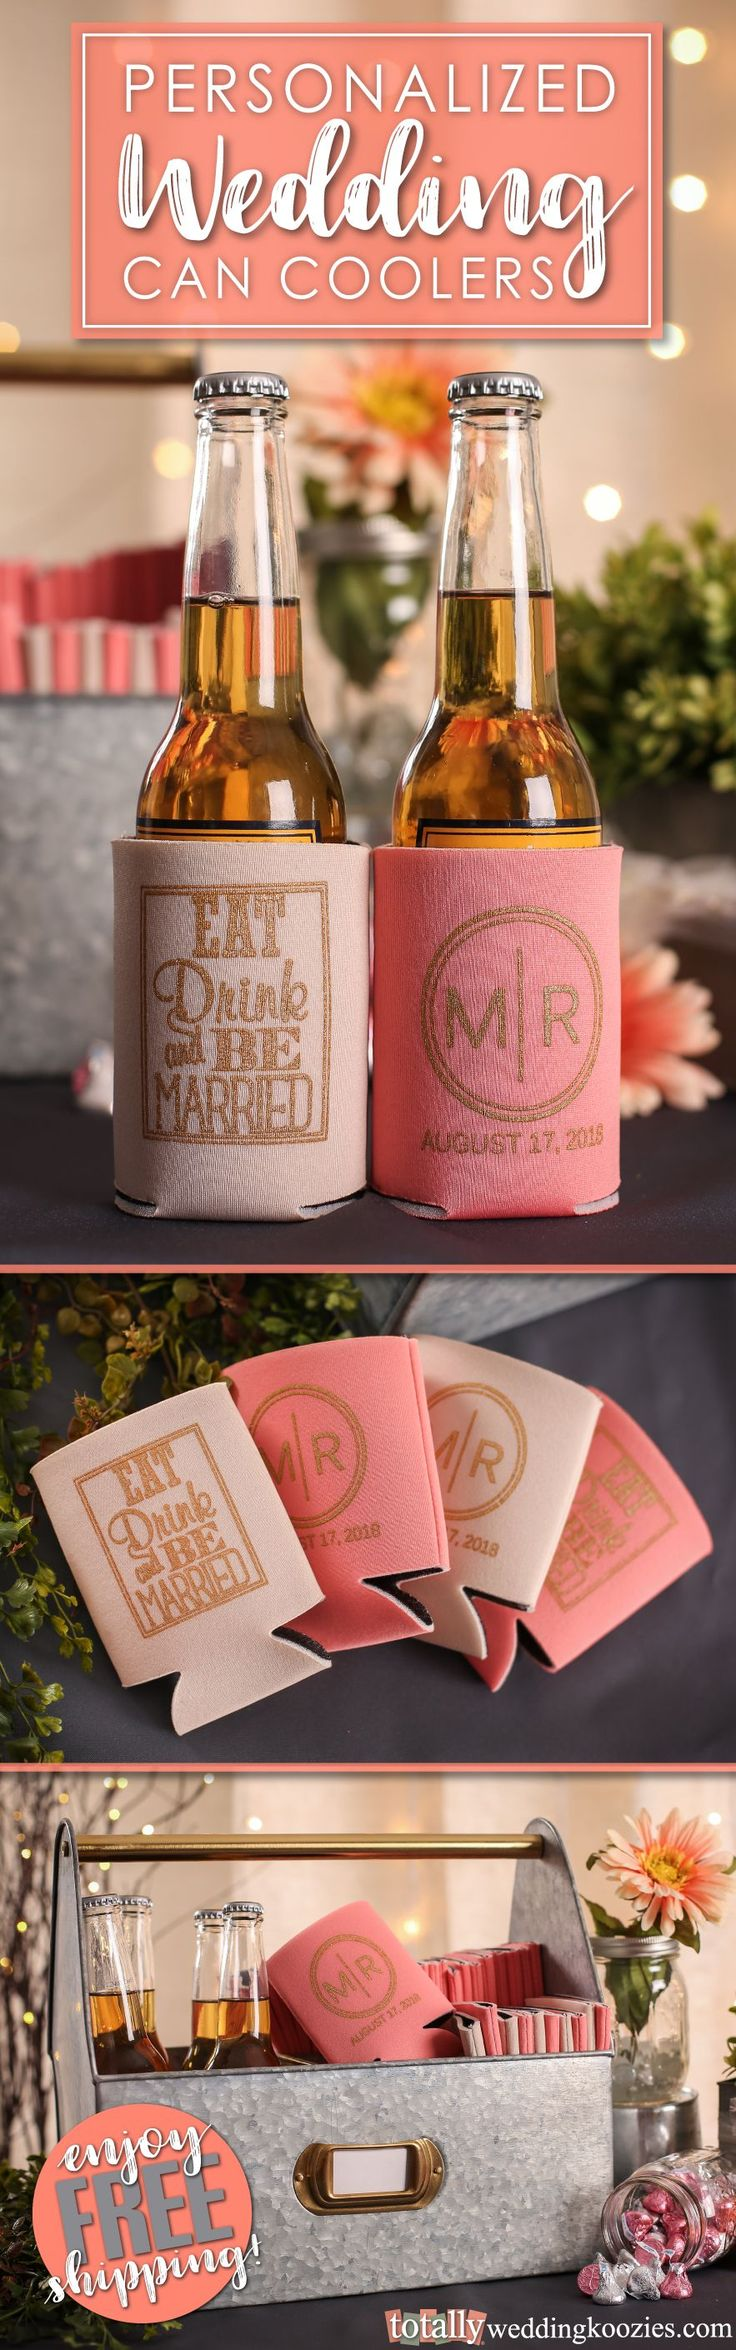 Our personalized wedding can coolers offer a unique, yet fun way to thank your guests! Select from over 1,000 design options, 45 product colors and 25 imprint colors. Use our state-of-the-art Design Ideas tool to uniquely showcase your name, wedding date or message on these re-usable can coolers! Use coupon code PINFREESHIP and receive FREE Ground Shipping in the Continental United States! Code is not valid with other coupon codes and is valid through April 4, 2017! Please visit my blog for…